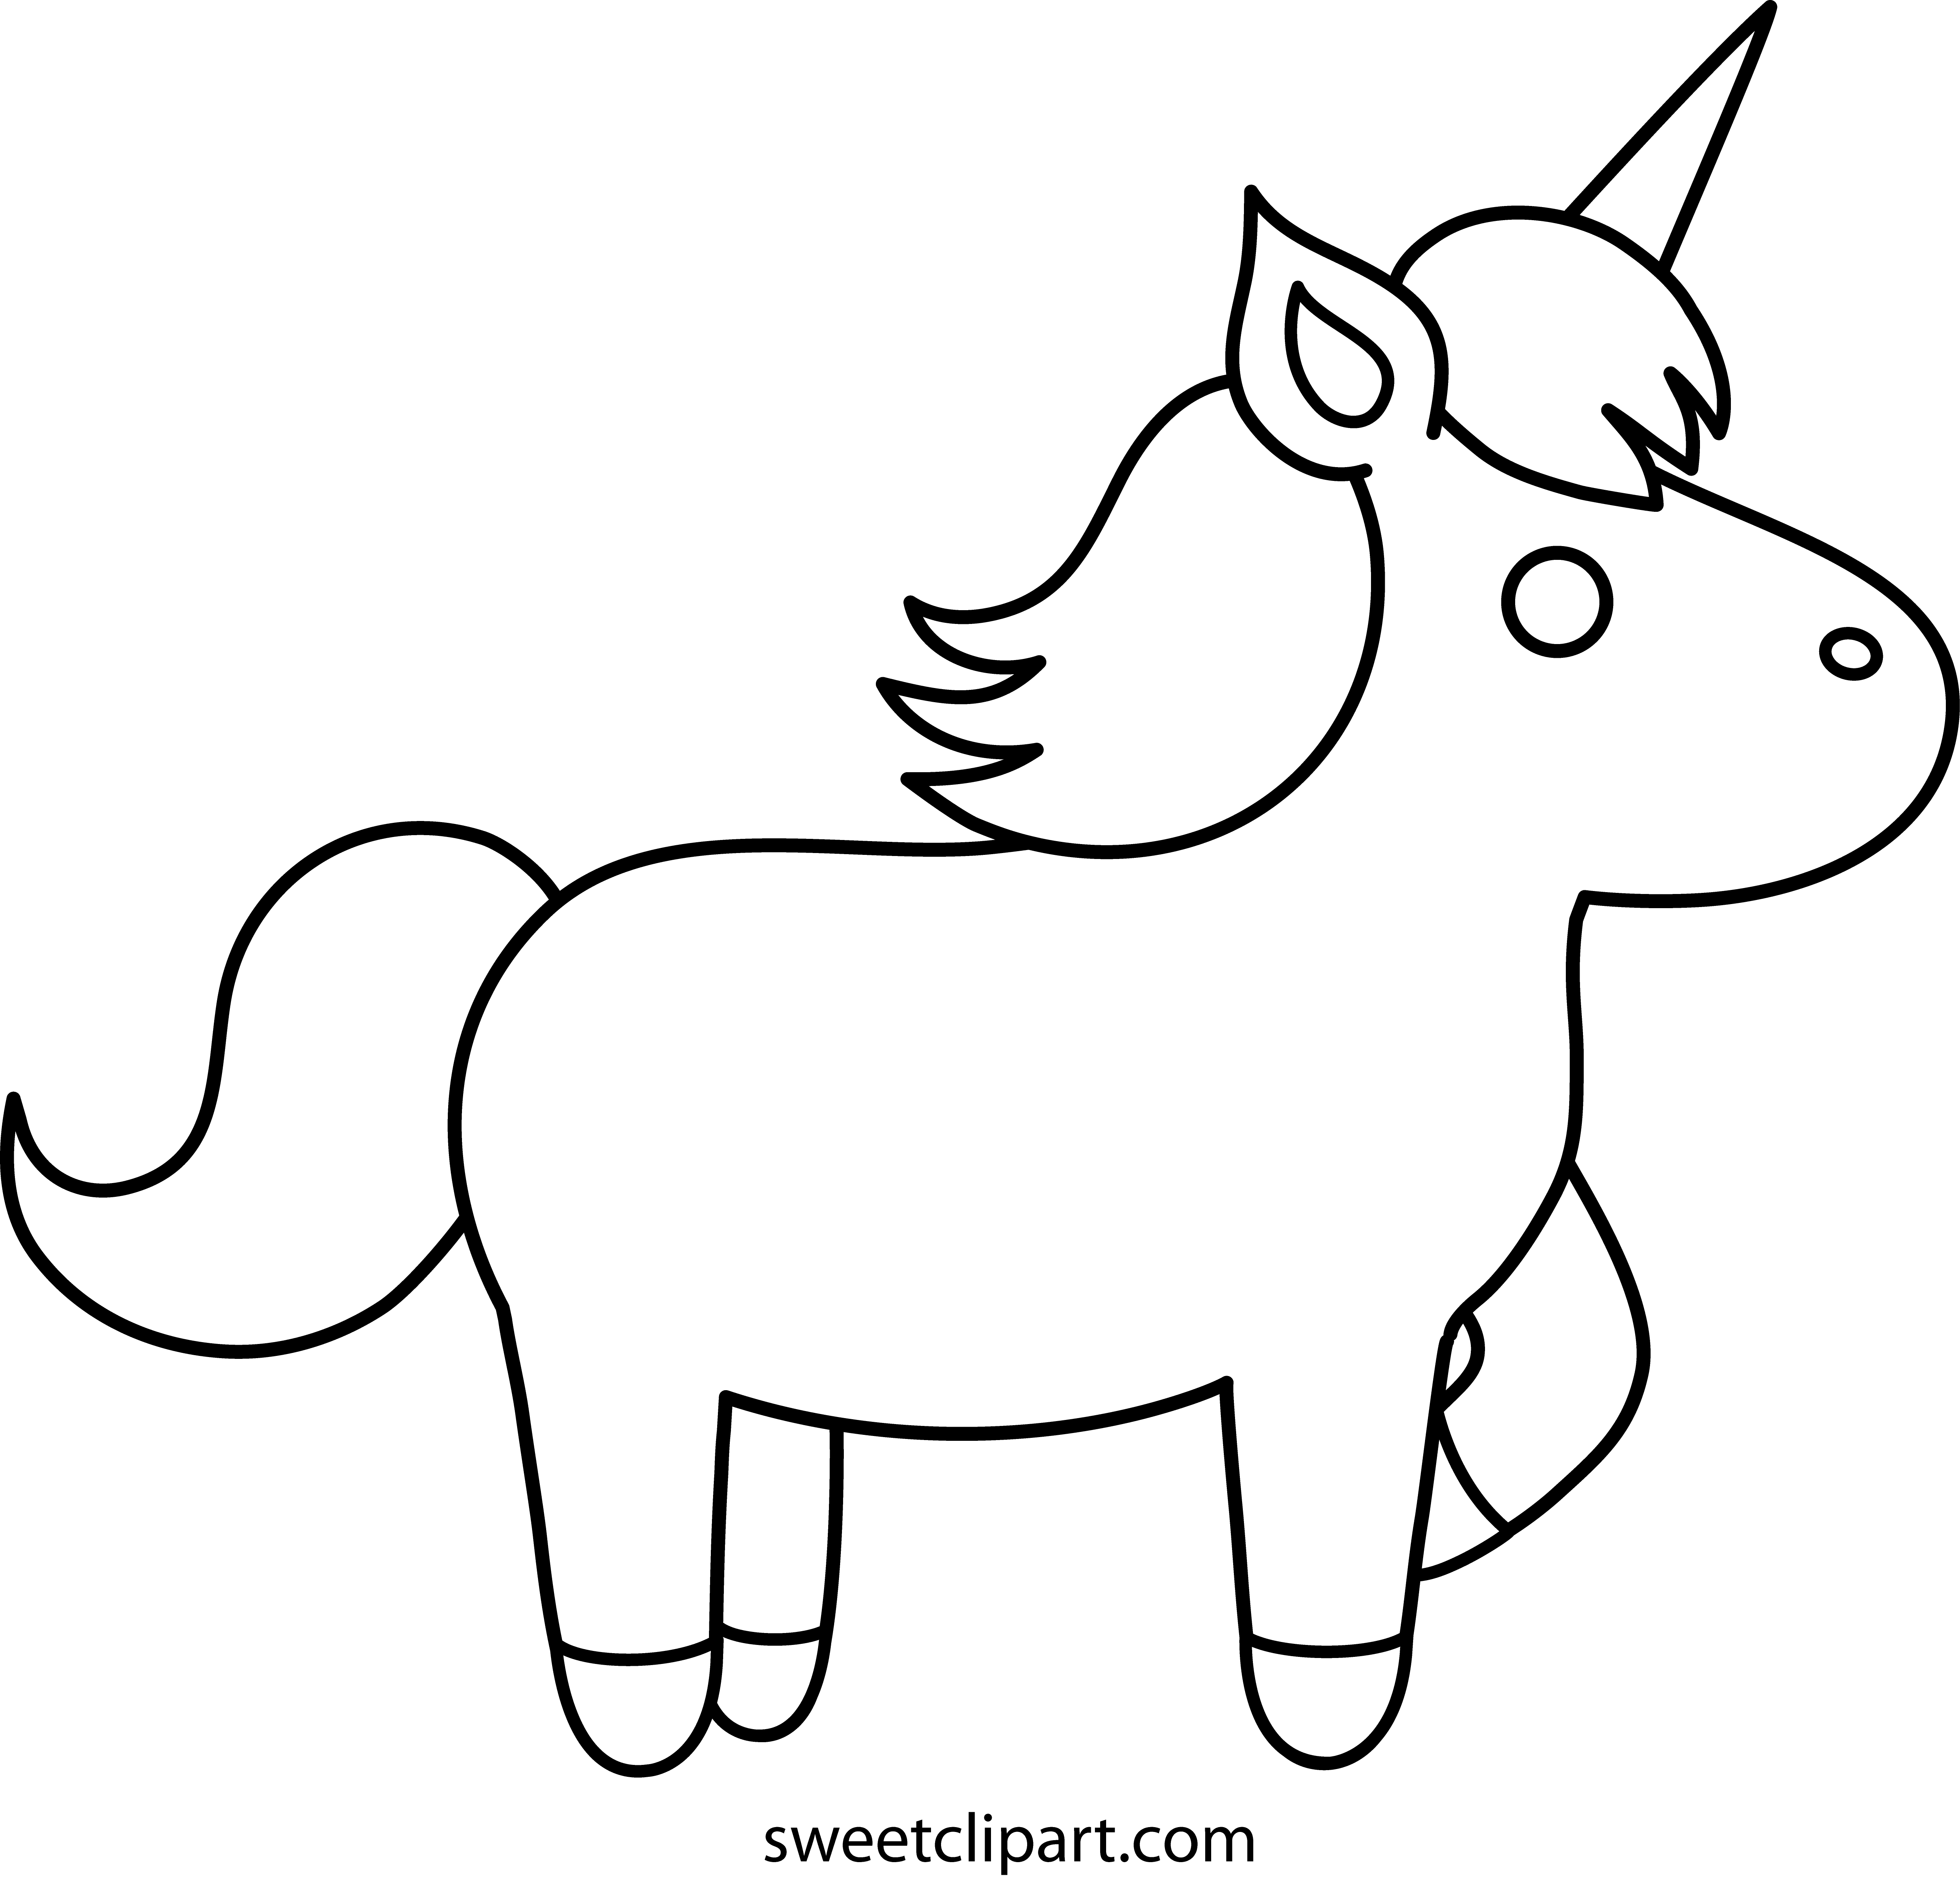 printable unicorn head coloring pages unicorn outline simple coloring pages printable unicorn coloring pages head